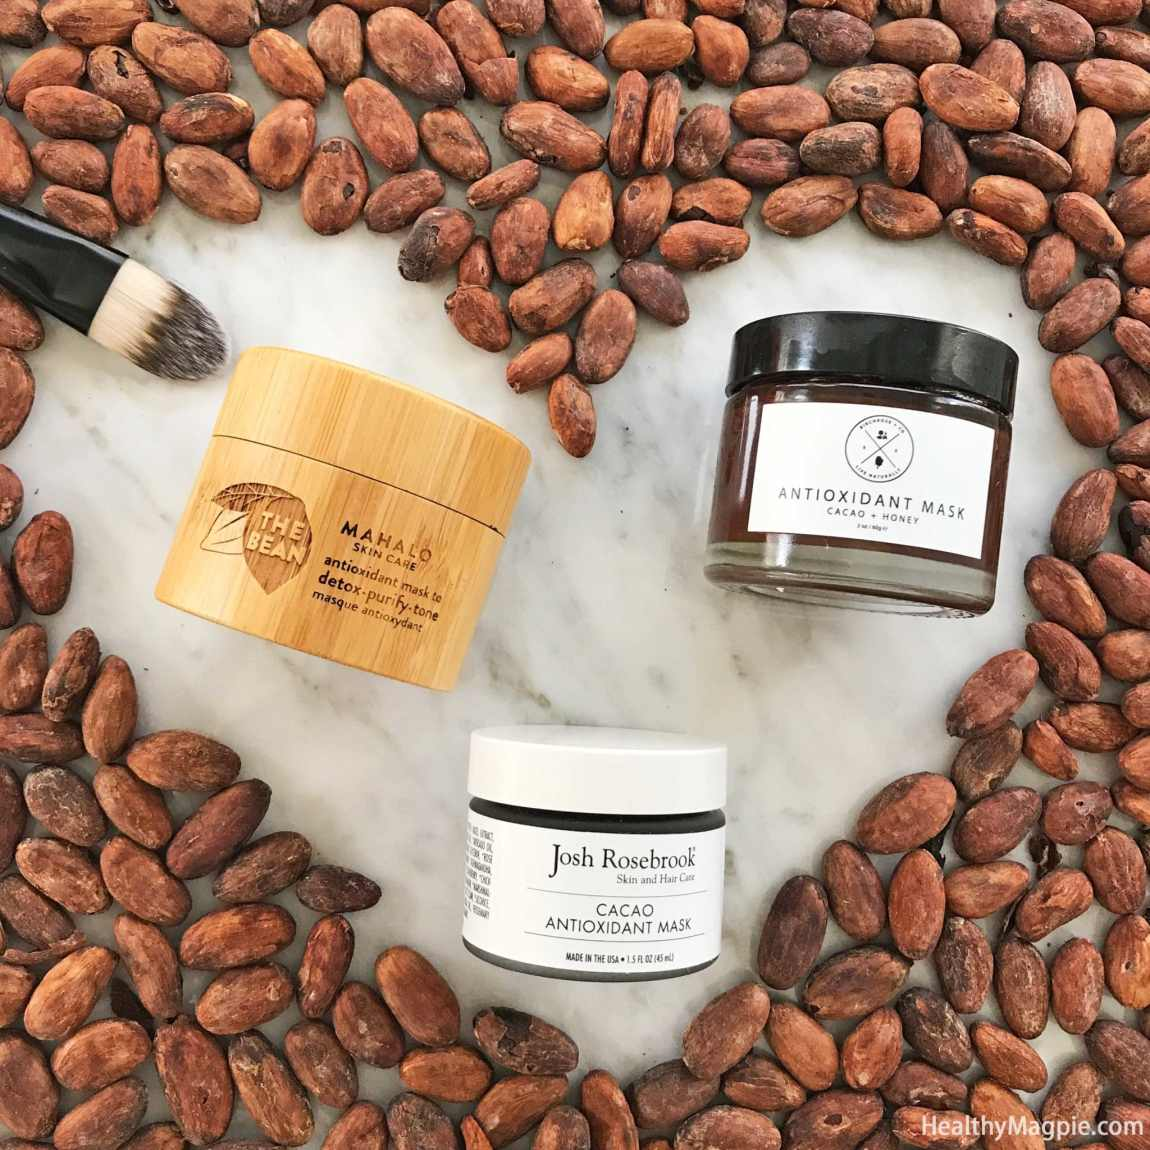 Pictures and reviews of organic Cacao Antioxidant Face Masks from Mahalo, Josh Rosebrook and Birchrose Co. I think all of these can help with my dark spots, melasma and hyperpigmentation on my face and upper lip.